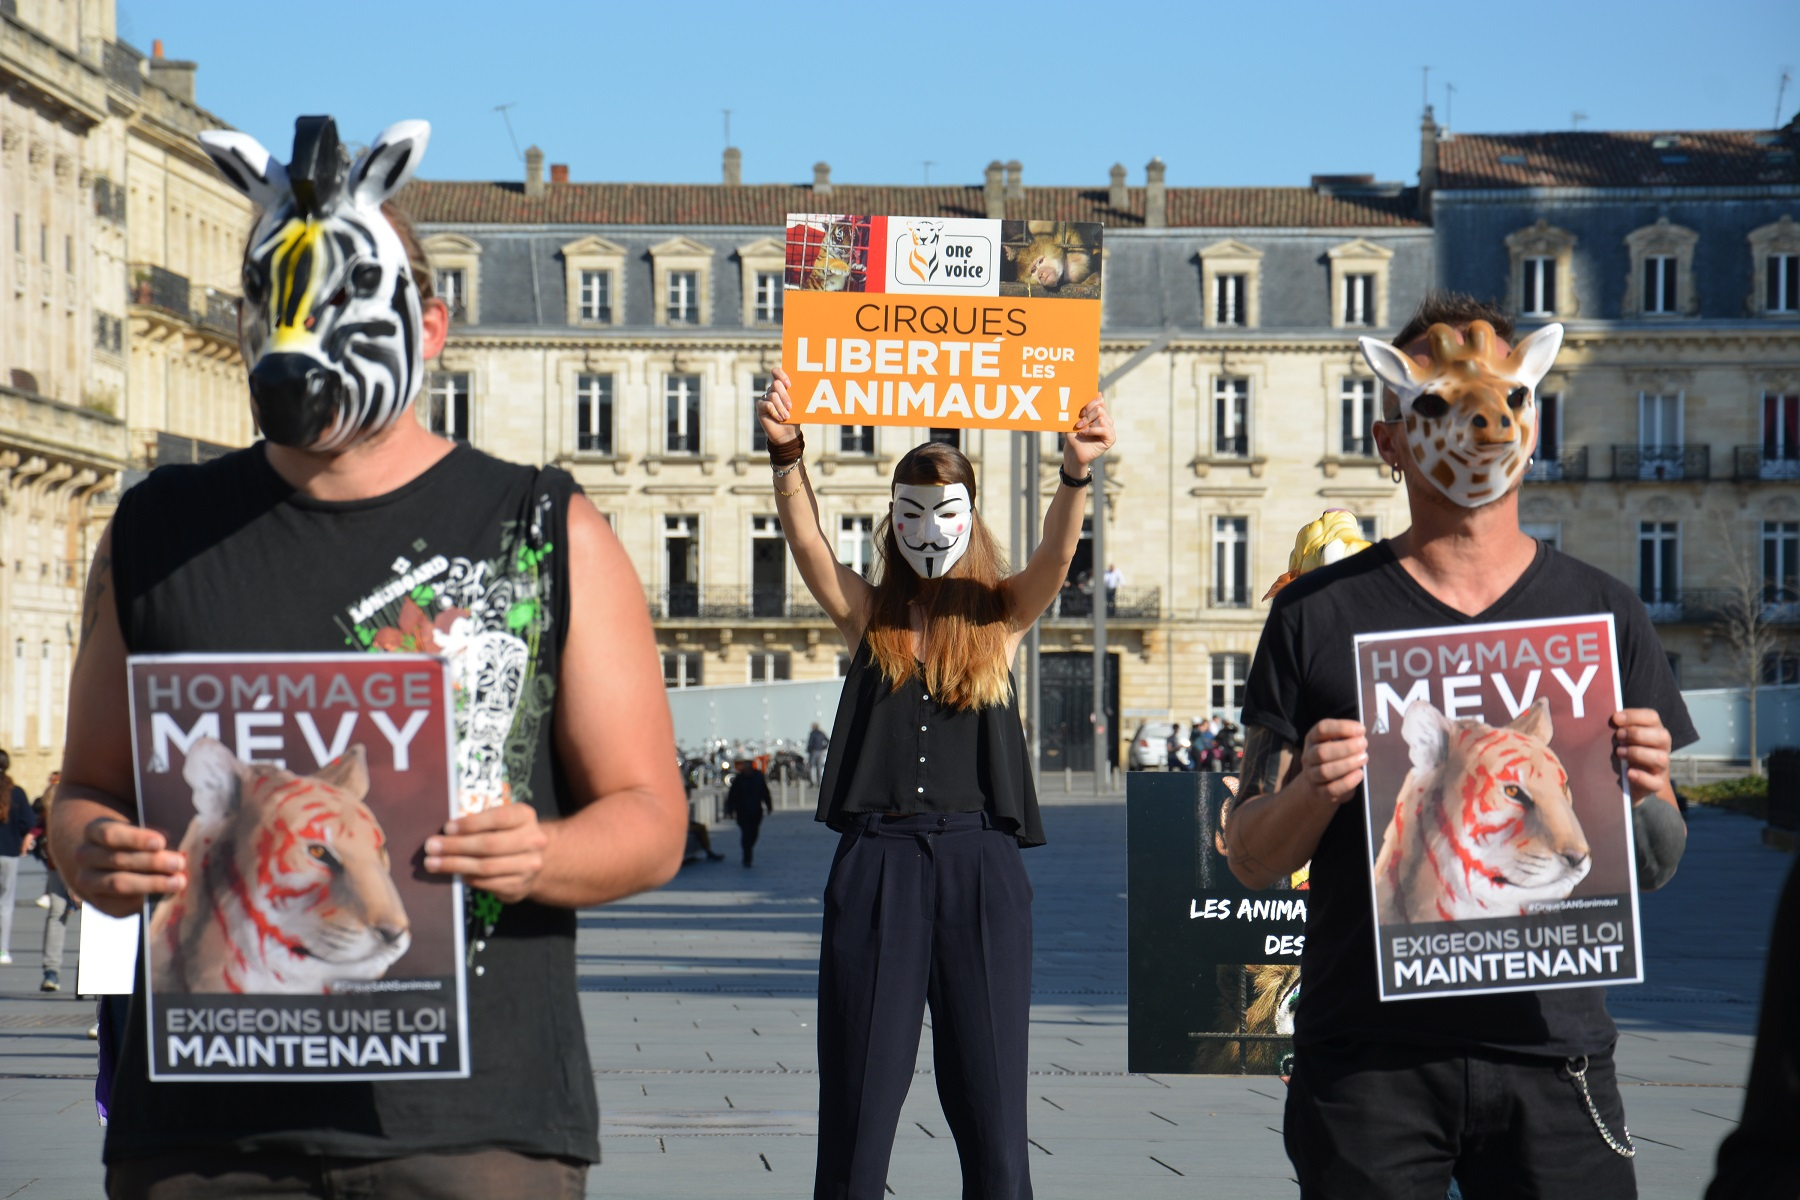 manifestation_mairie_bordeaux_animaux_cirques_triangle4